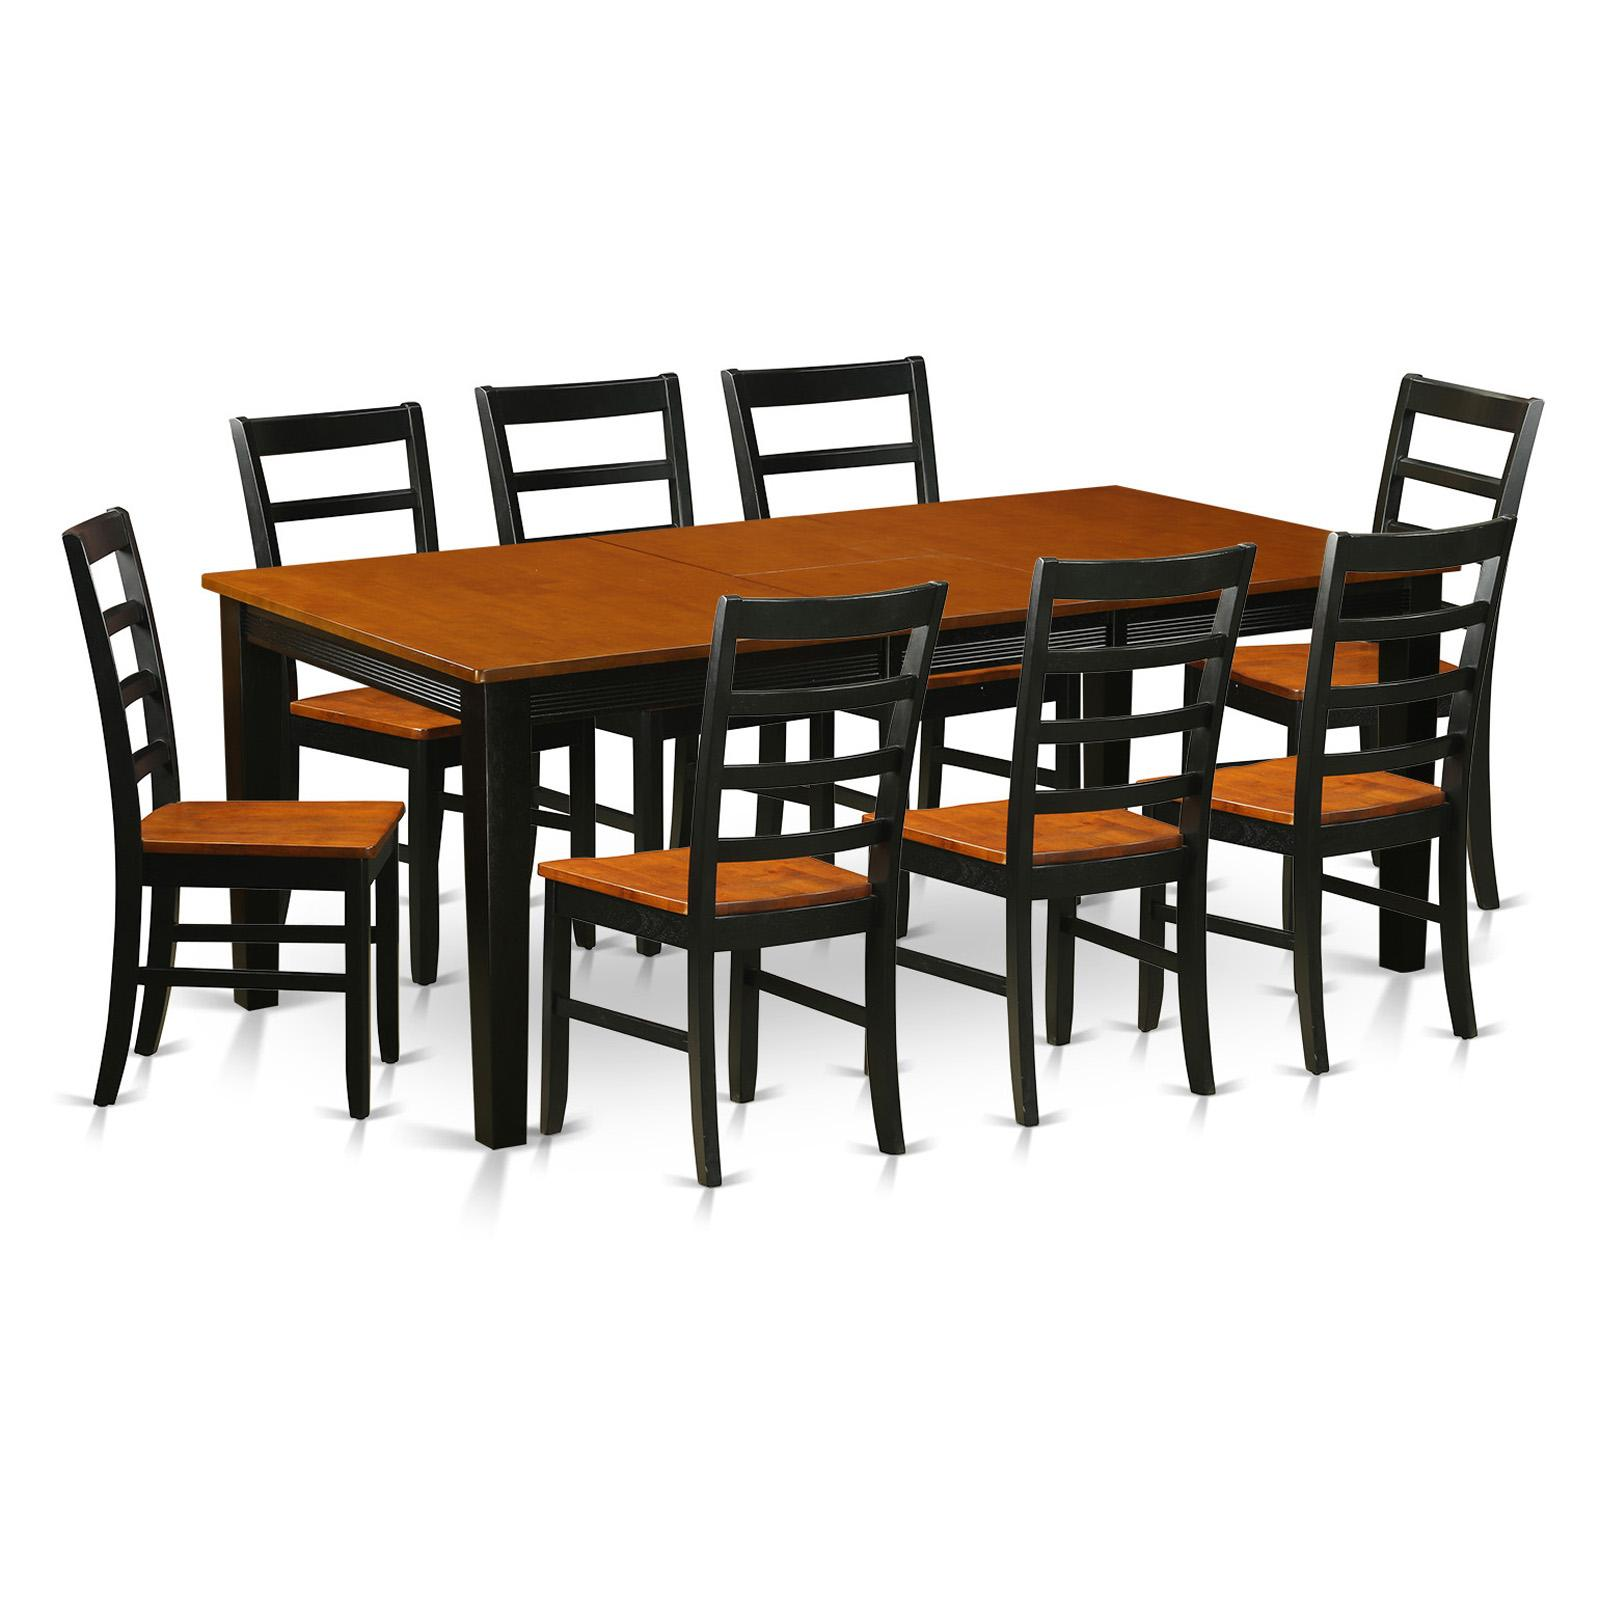 East West Furniture Quincy 9-Piece Shaker Dining Table Se...